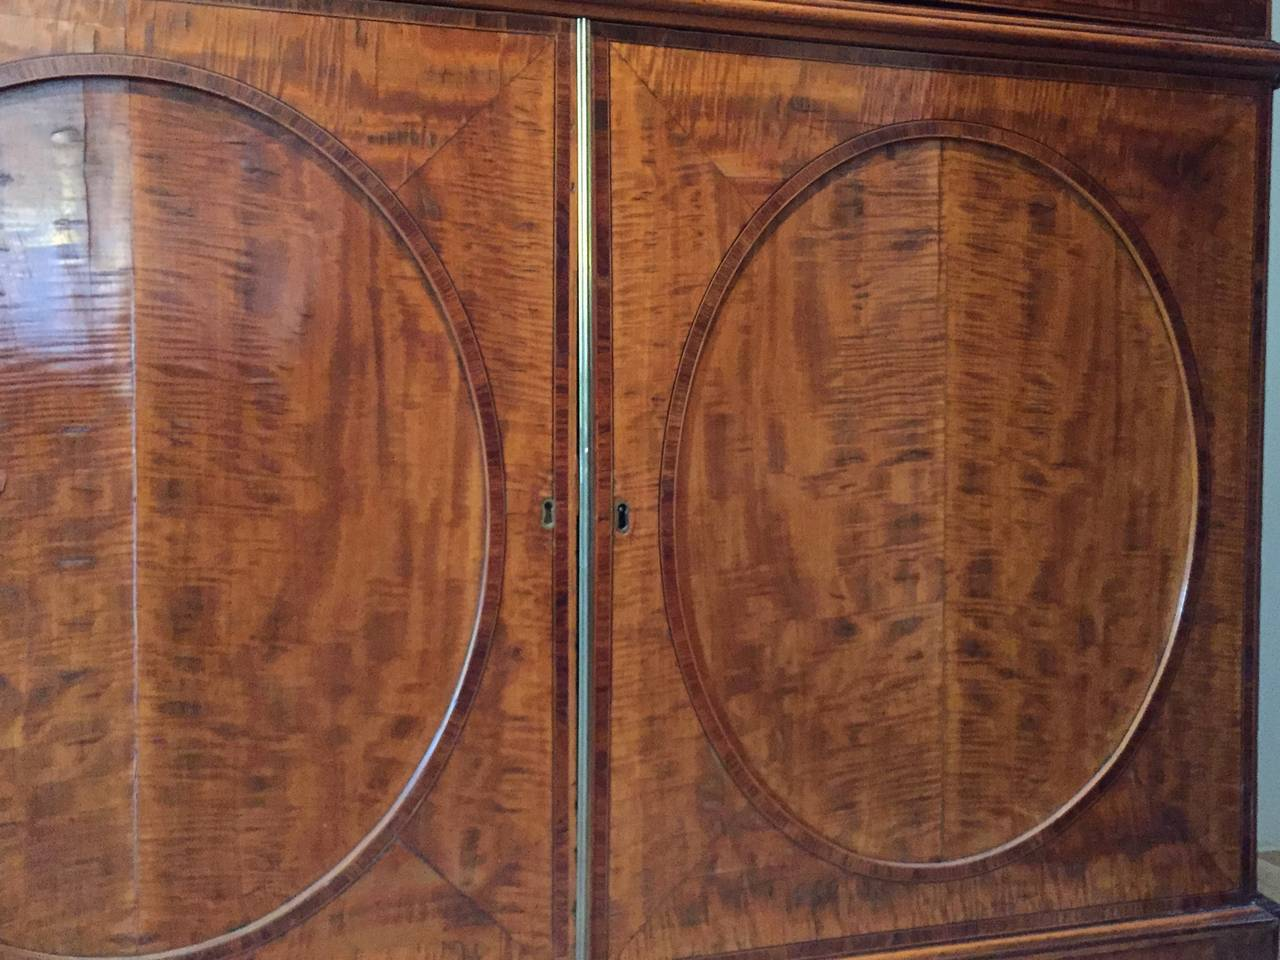 Fine Hepplewhite Decorated Inlaid Satinwood & Mahogany Two-Part Bookcase Cabinet In Good Condition In New York, NY